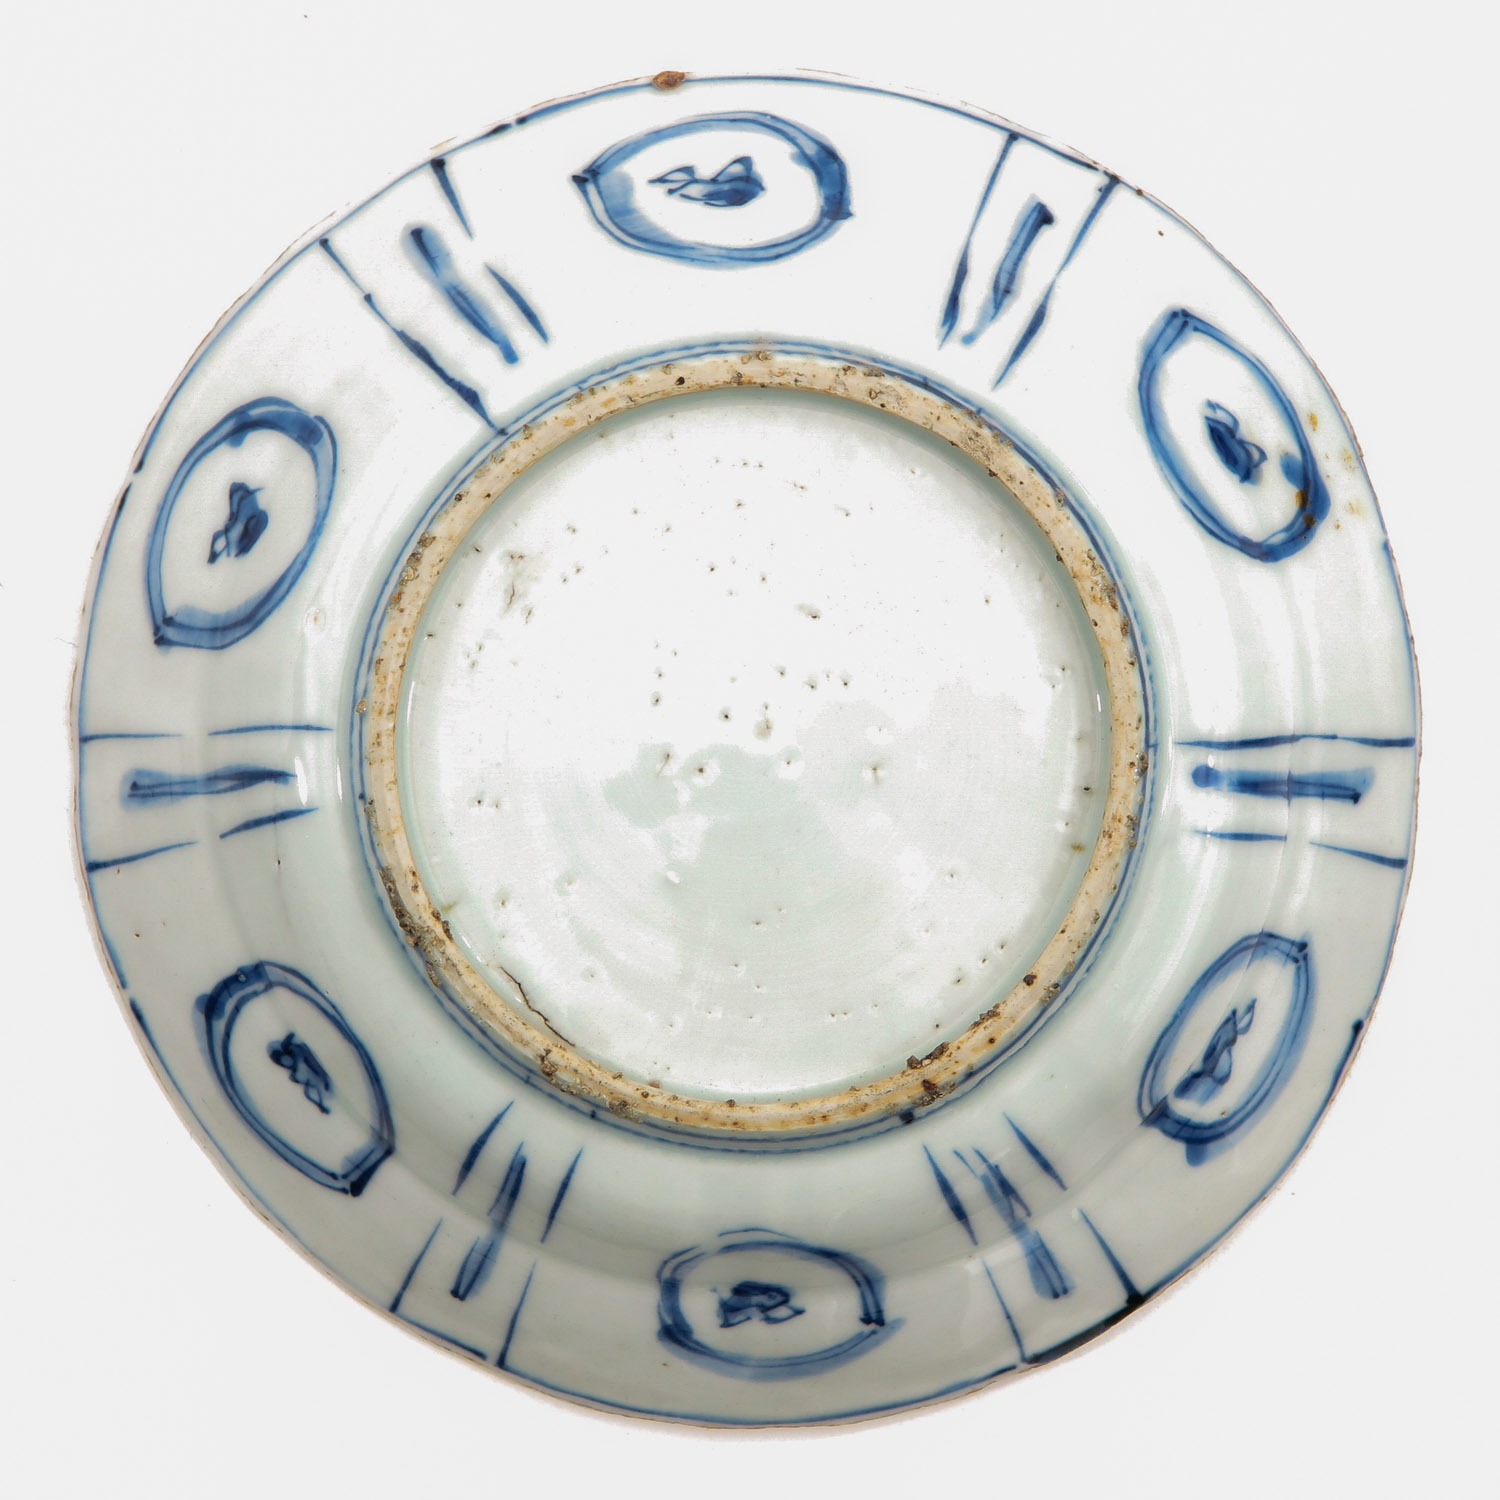 A Blue and White Plate - Image 2 of 5